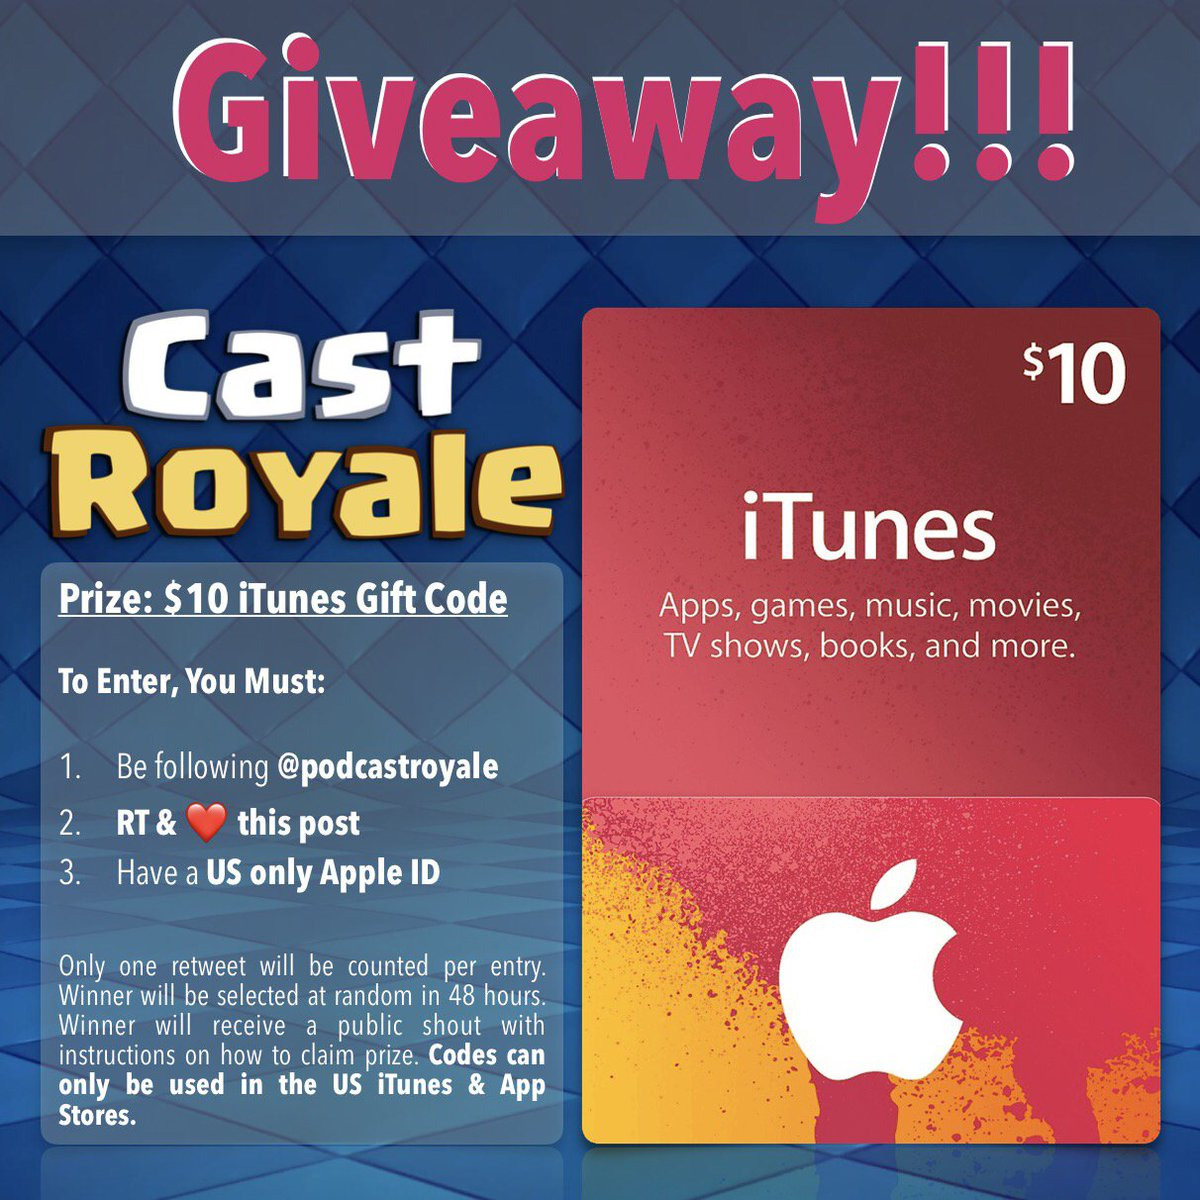 Cast Royale on Twitter: